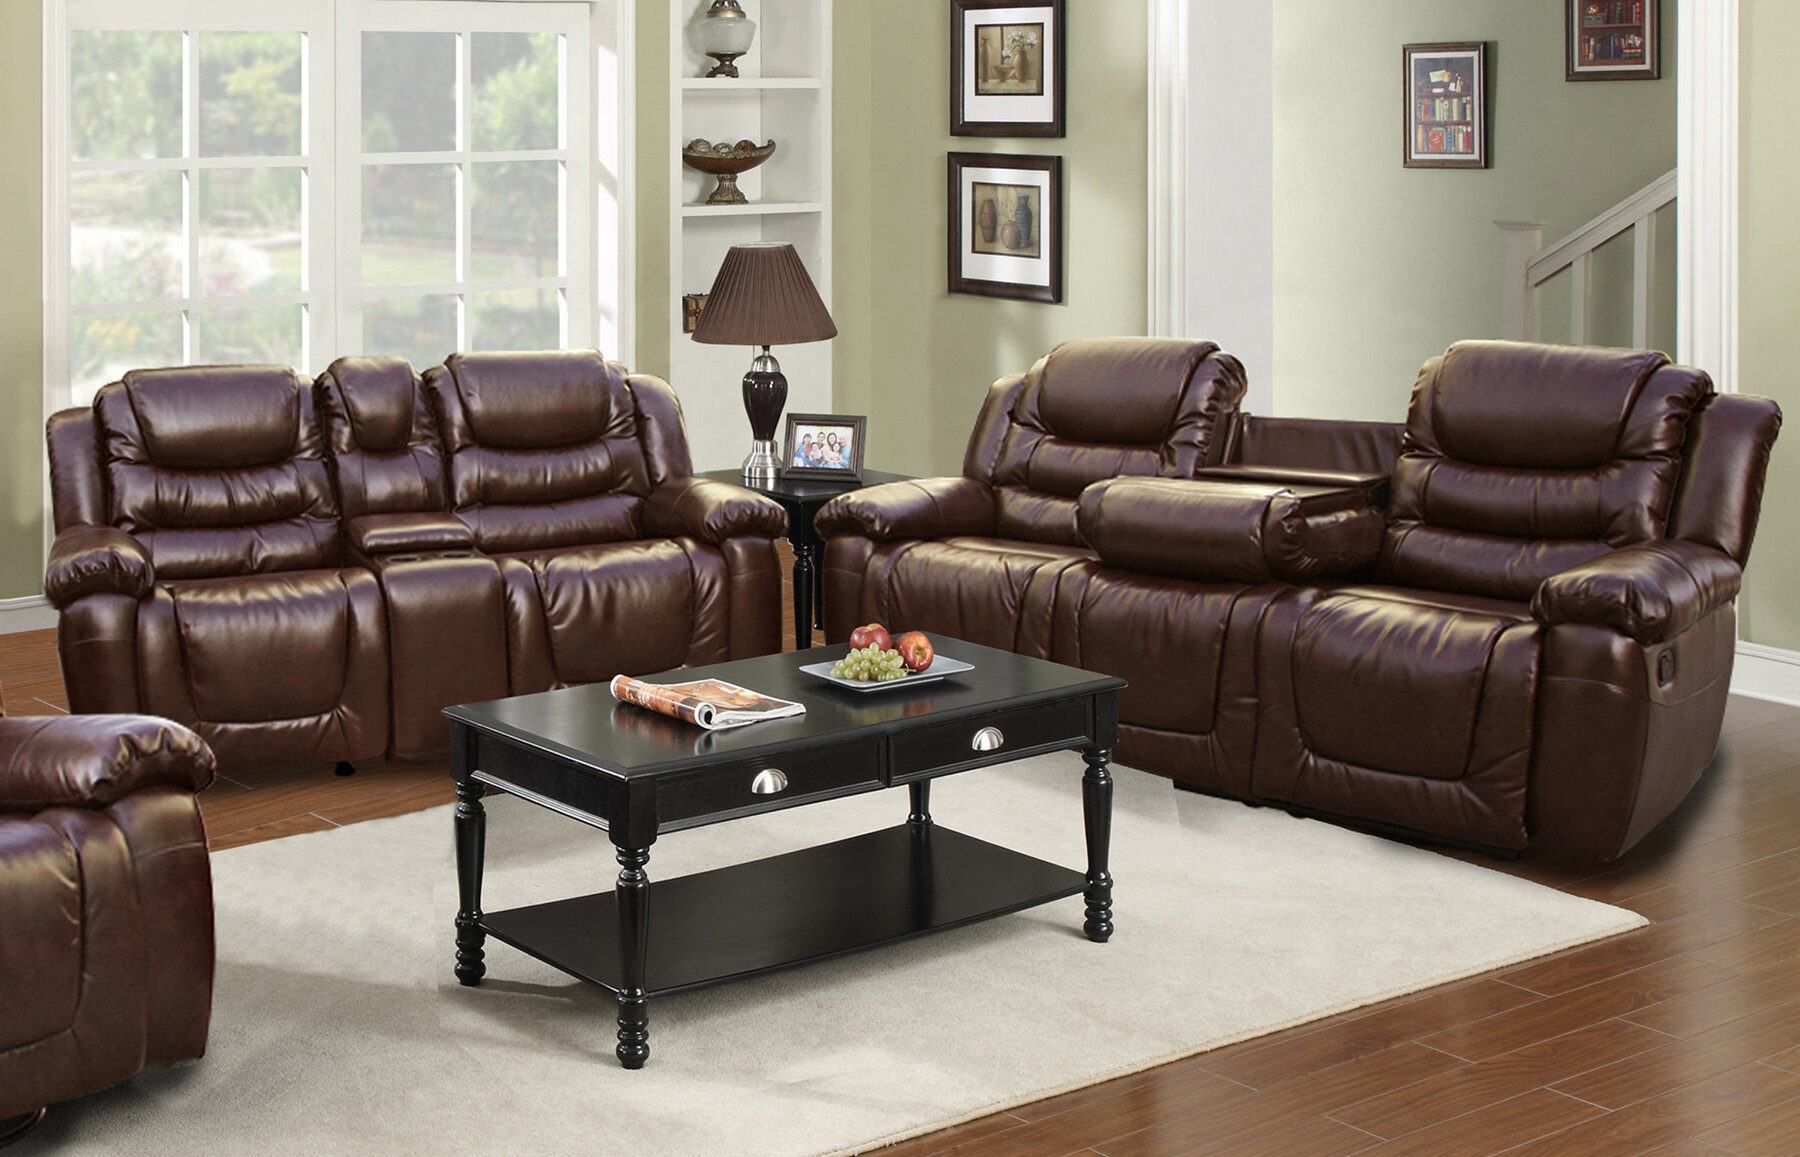 Ottawa 2 piece bonded leather reclining living room sofa for 8 piece living room set